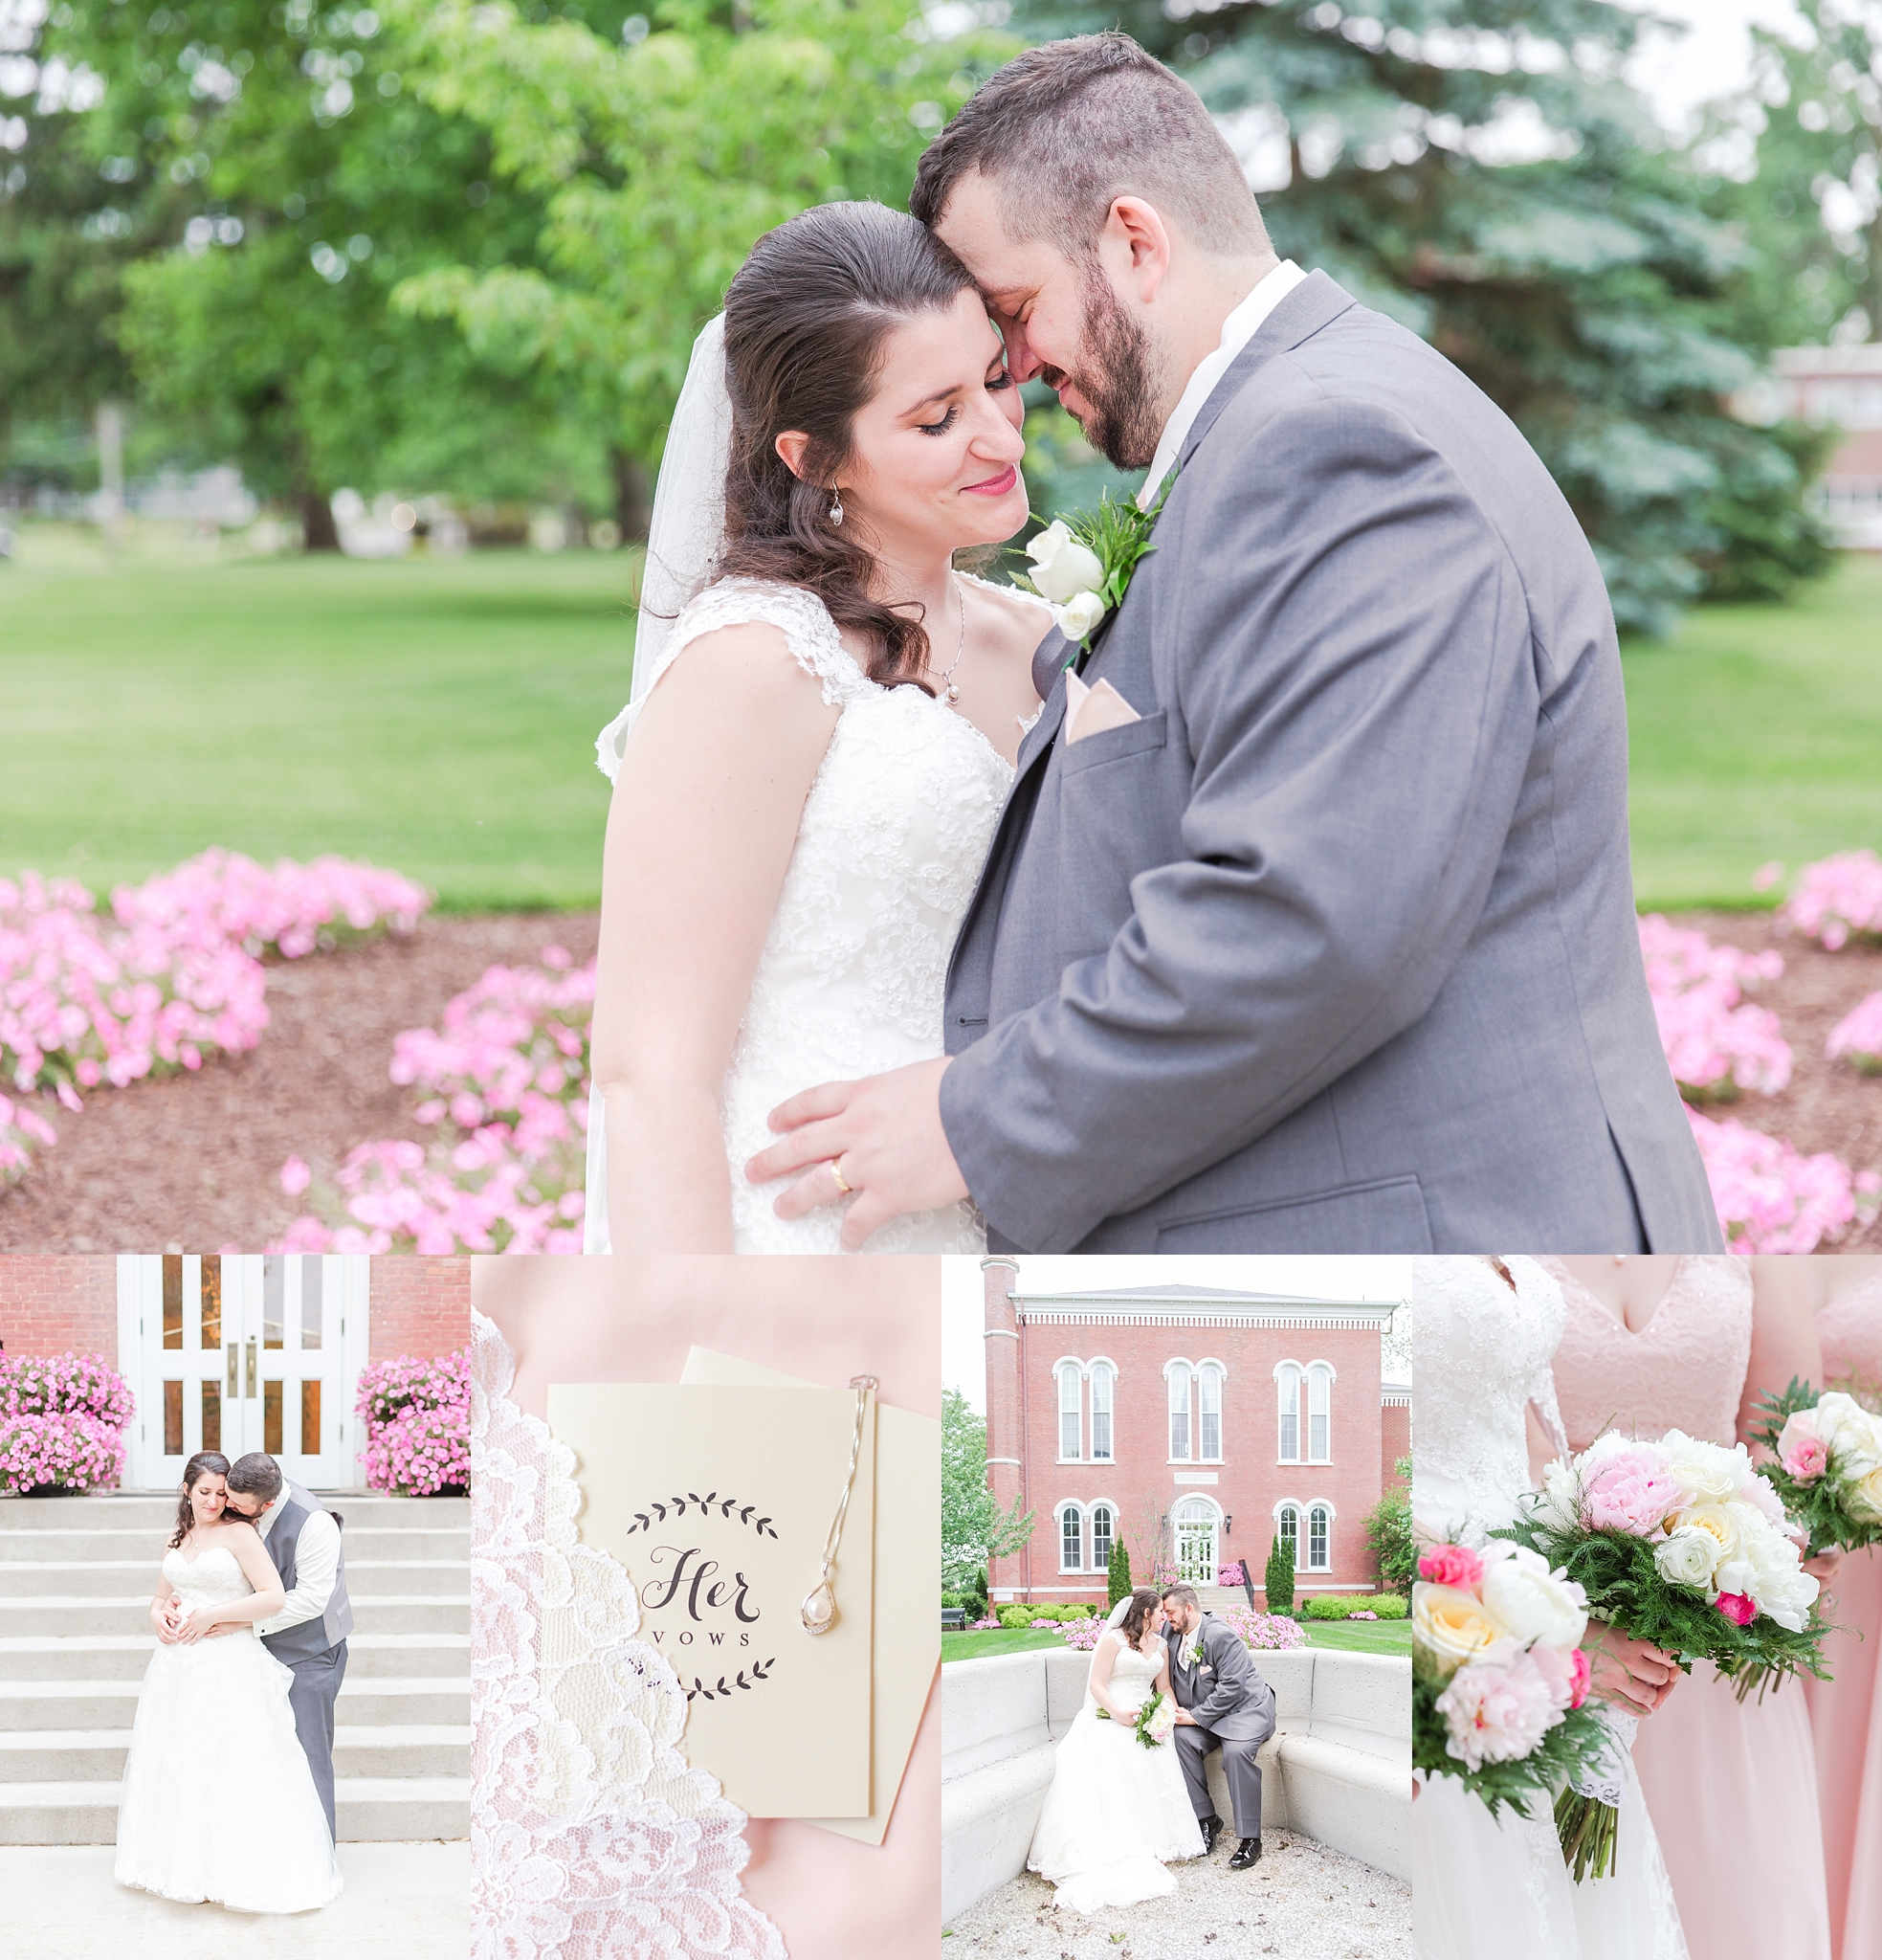 emotional-laid-back-romantic-wedding-photos-at-adrian-college-herrick-chapel-in-adrian-michigan-by-courtney-carolyn-photography_0089.jpg